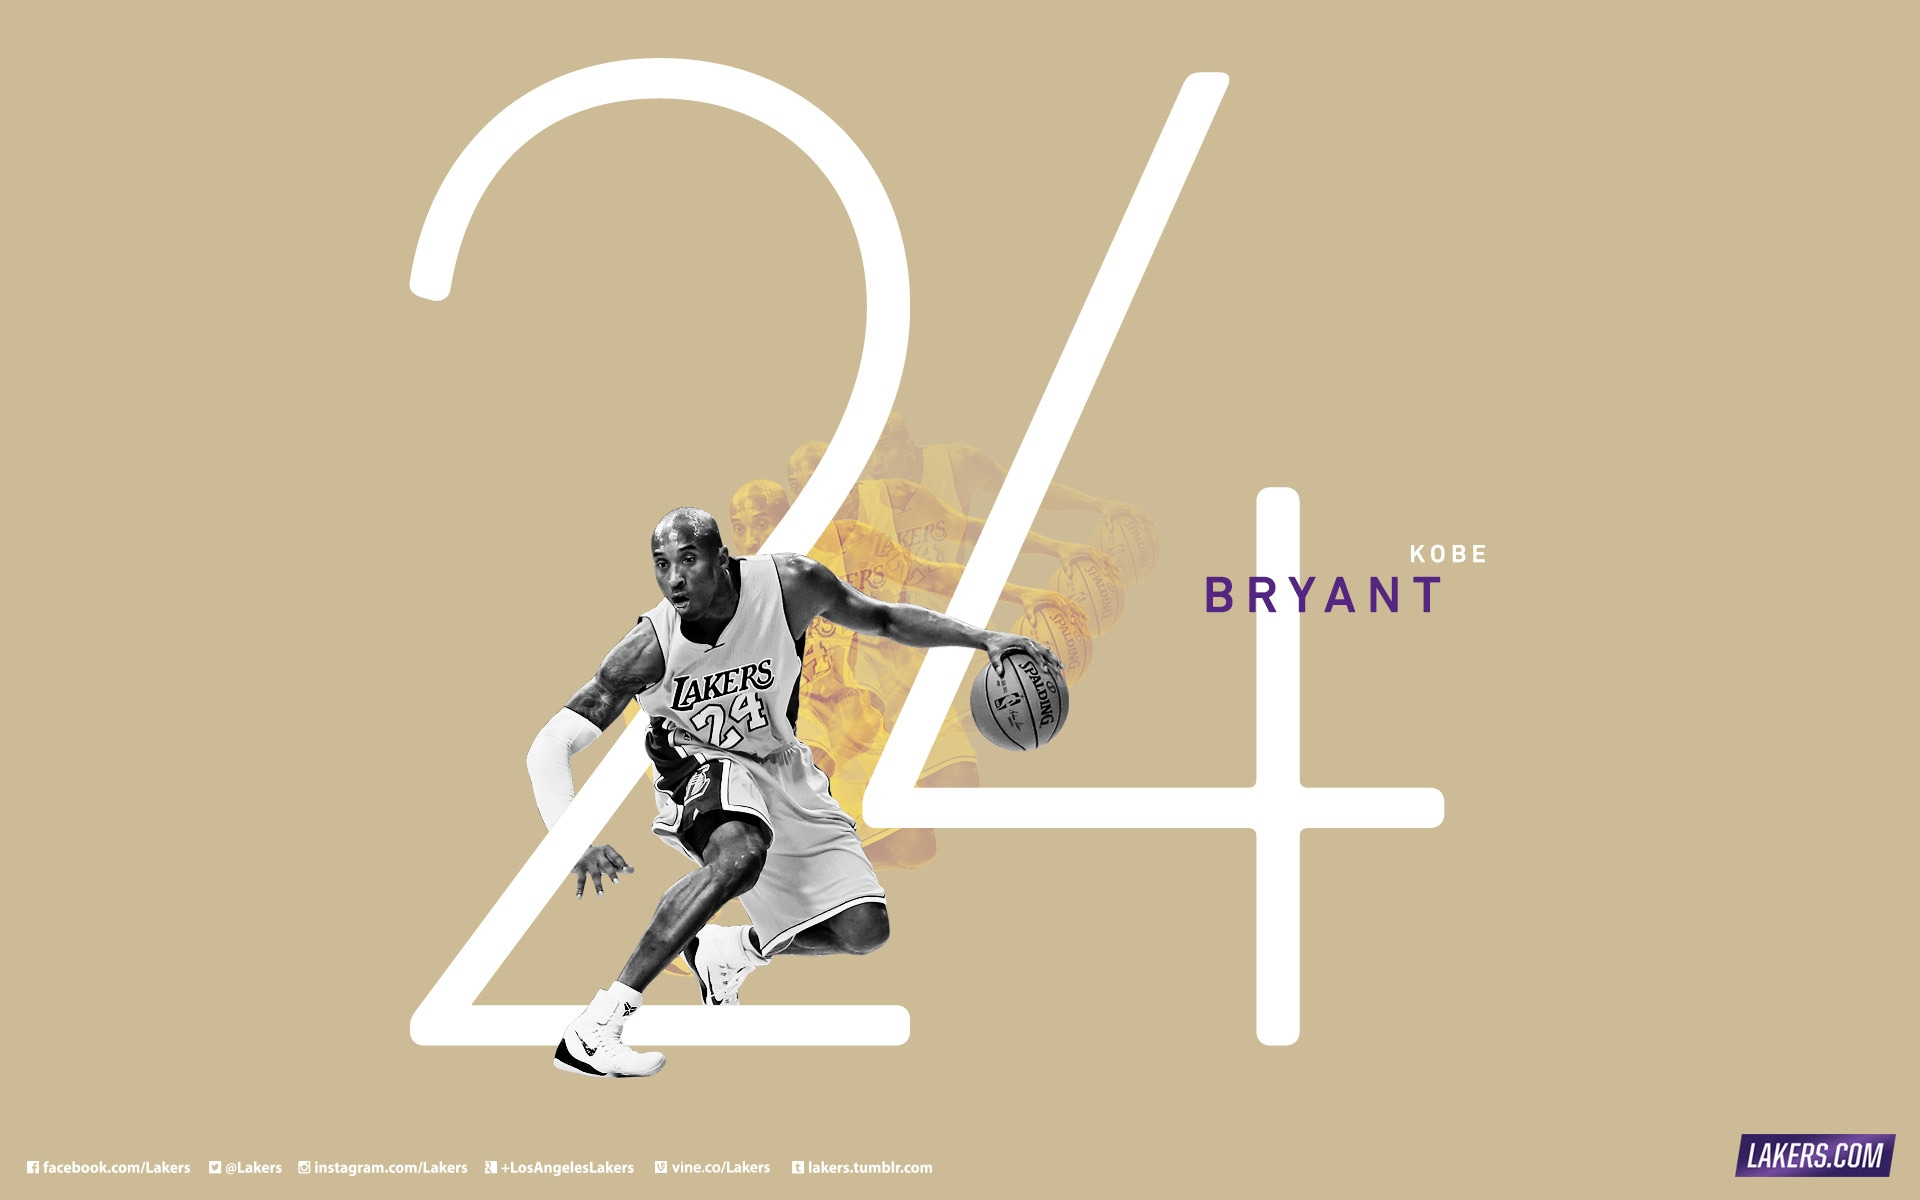 Kobe Bryant Player Wallpaper